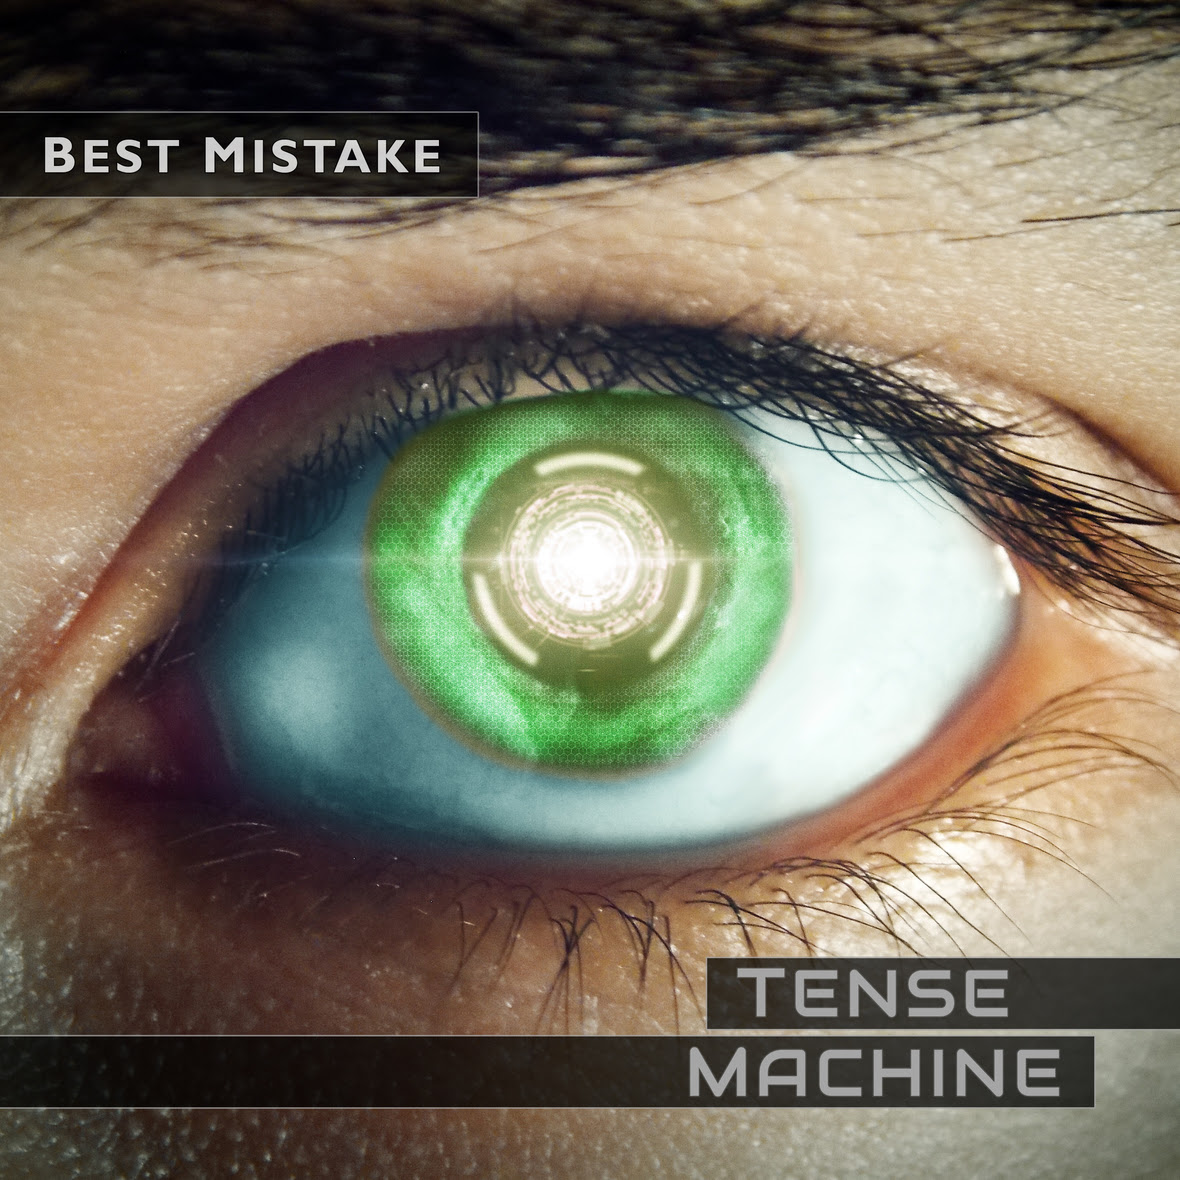 TenseMachine Artwork BestMistake 3000X3000